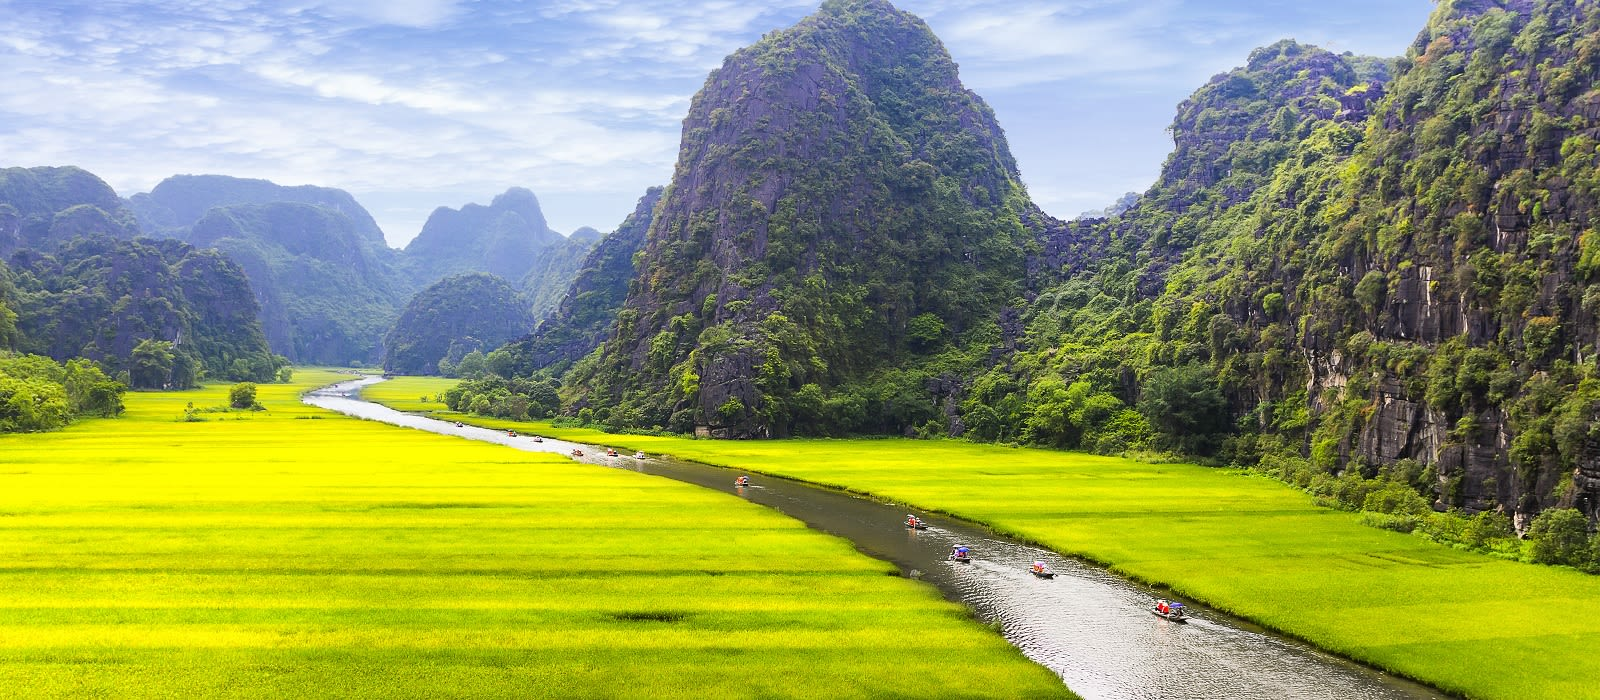 Vietnam and Cambodia: Of Legends and Islands Tour Trip 4